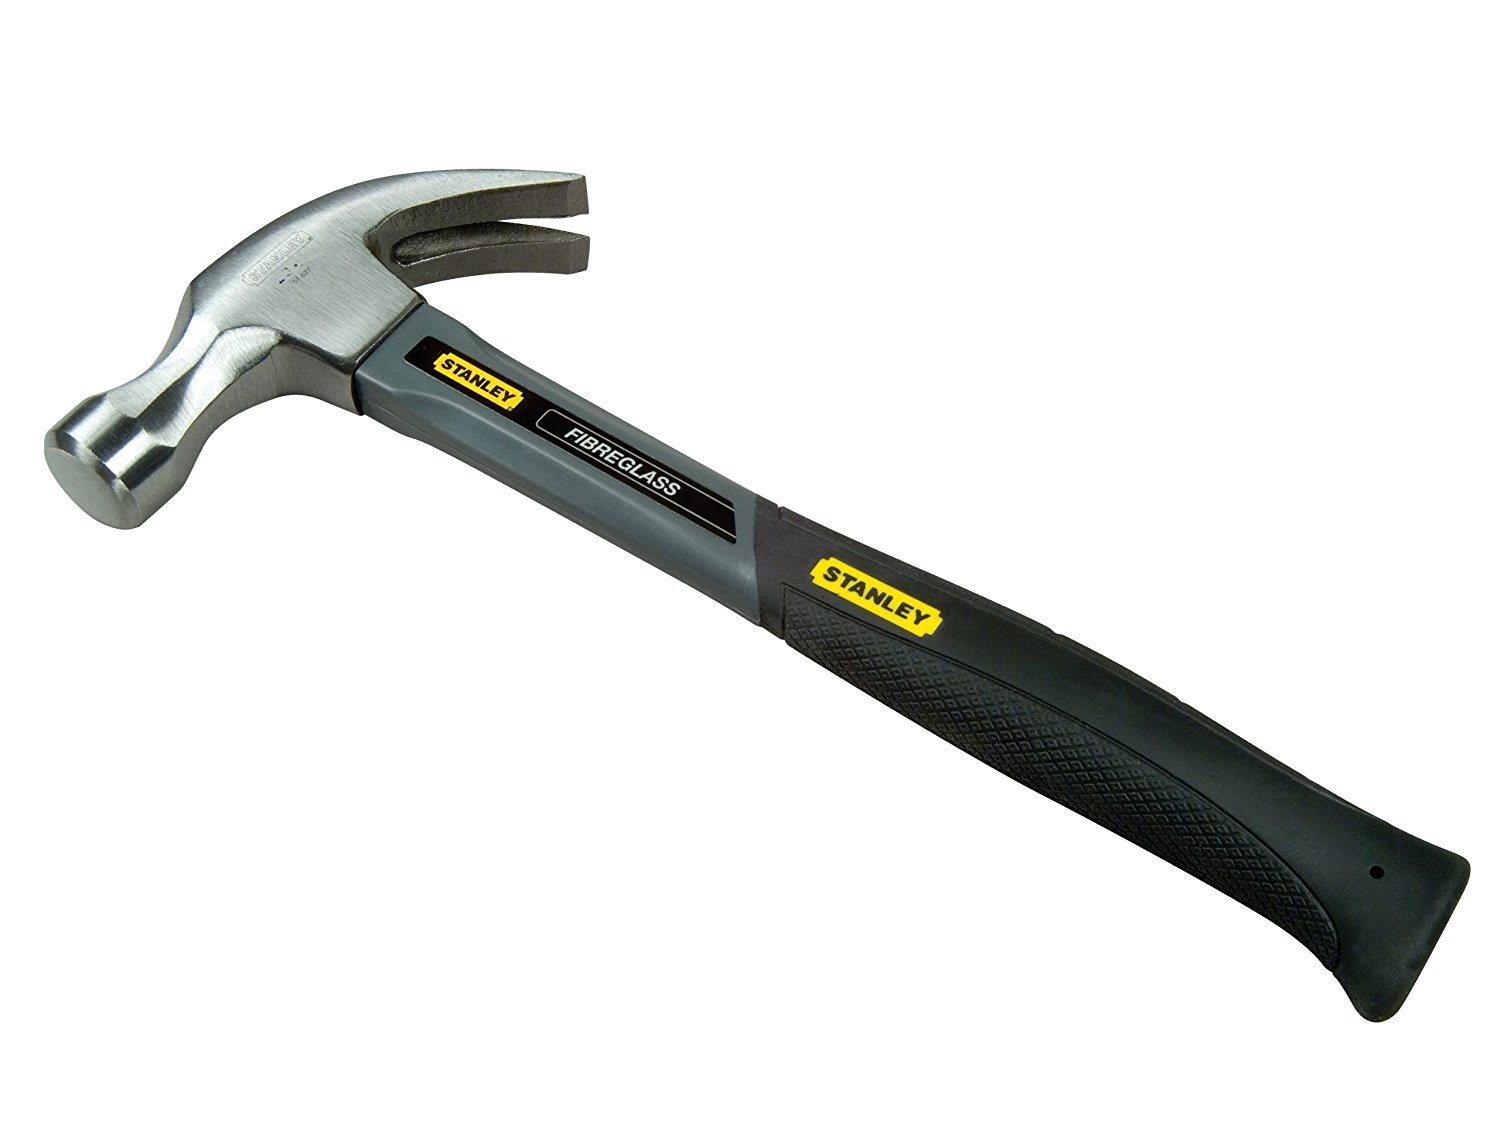 Stanley 1-51-628 Fibreglass Curved Claw Hammer 20 oz